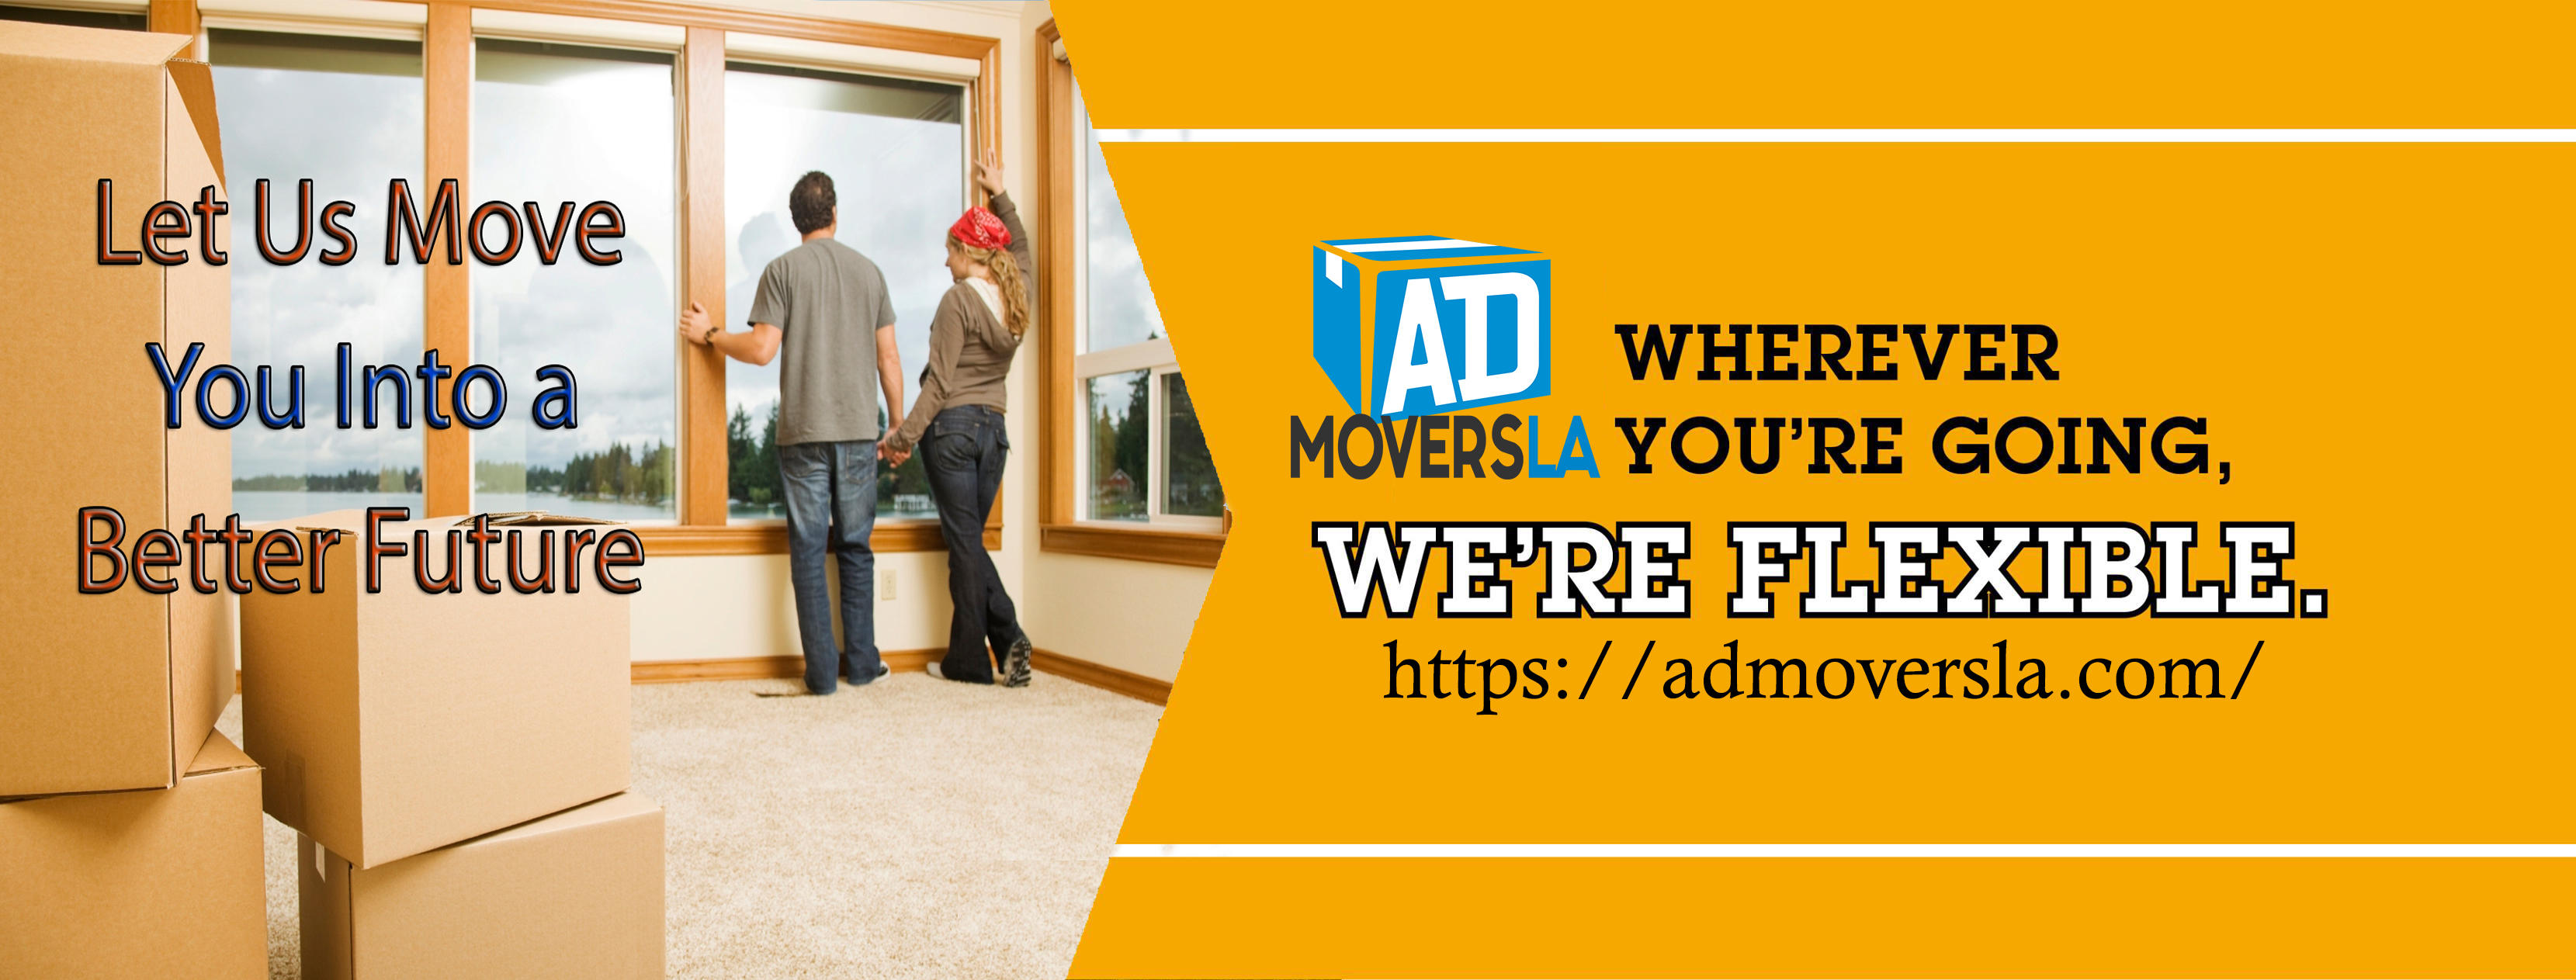 AD Movers image 0